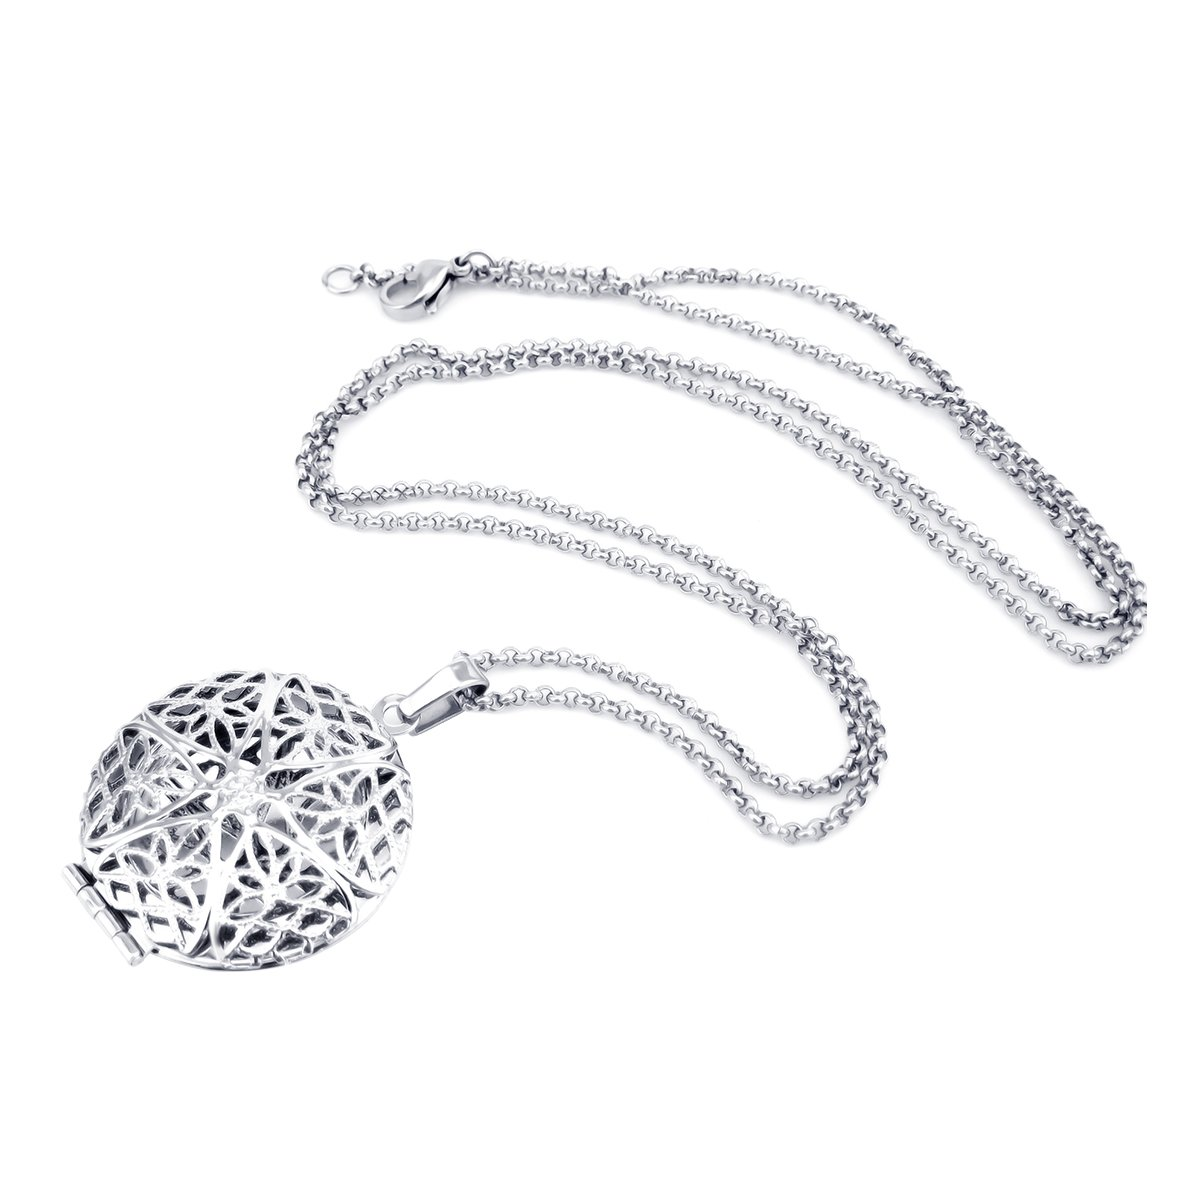 Essential Oil Pendant Necklace Filigree Locket Stainless Steel Jewelry For Women